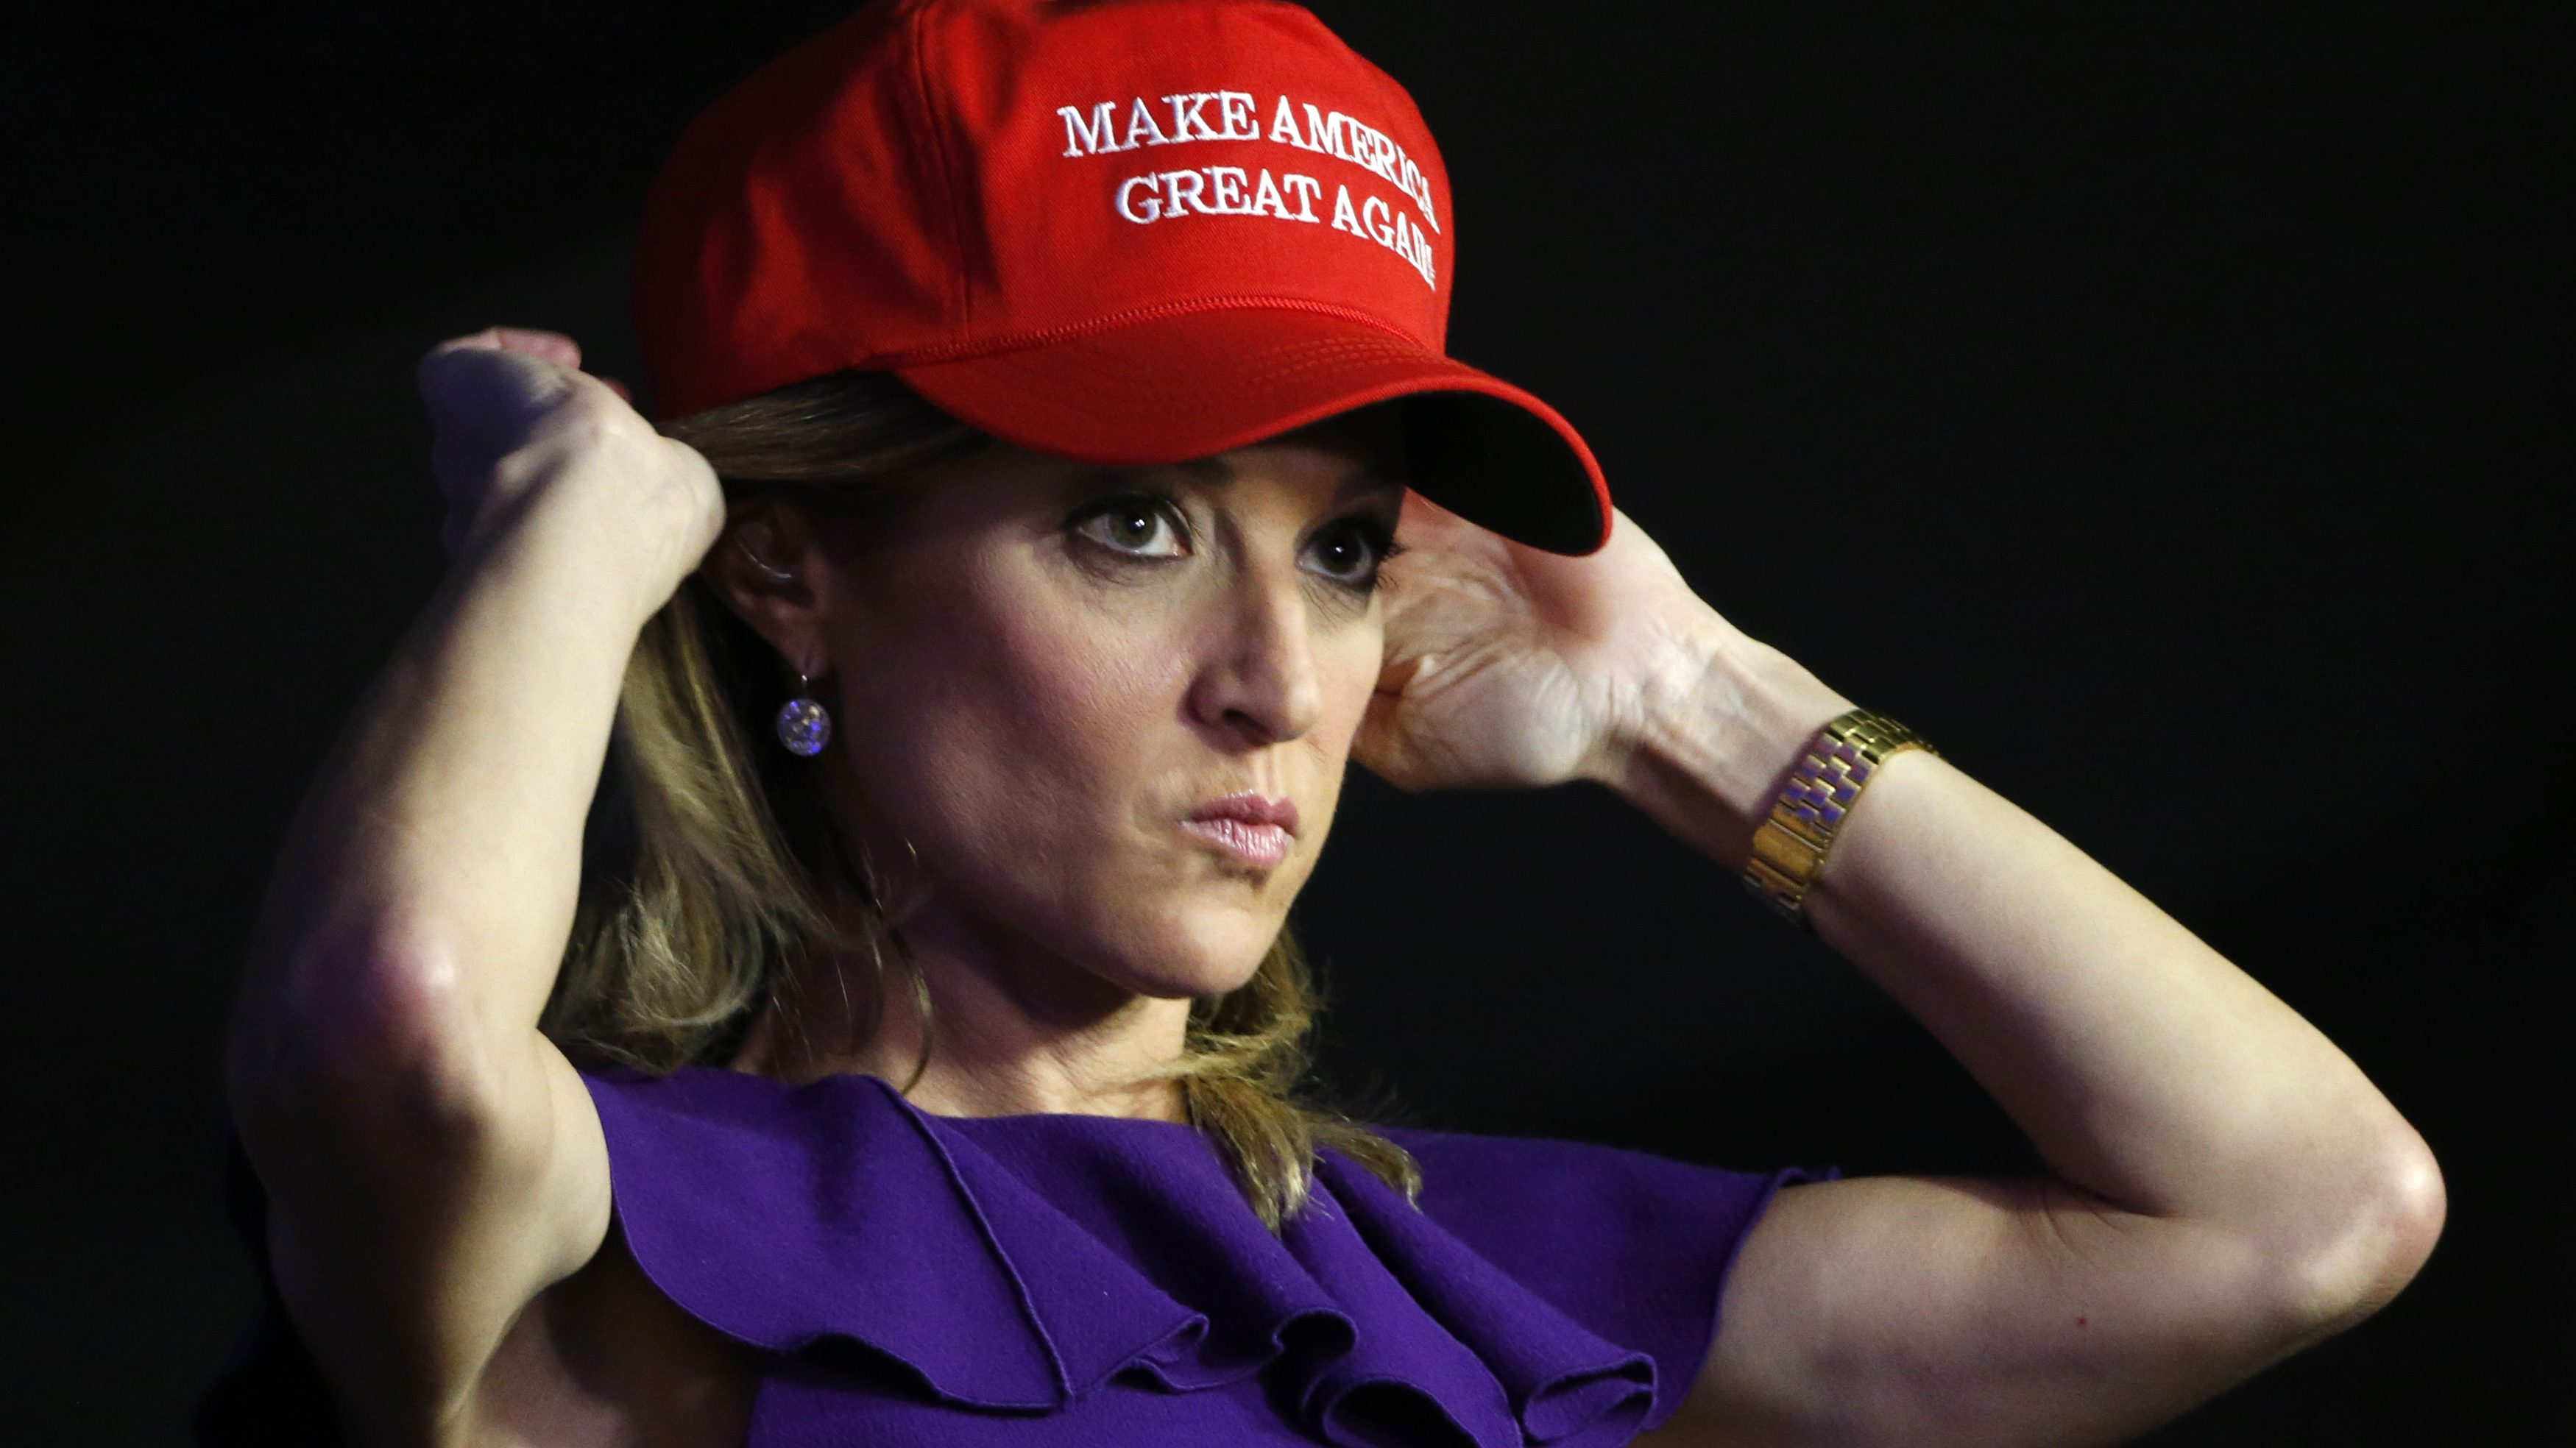 A Trump supporter adjusts her hat as she waits at Republican U.S. presidential nominee Donald Trump's election night rally in New York